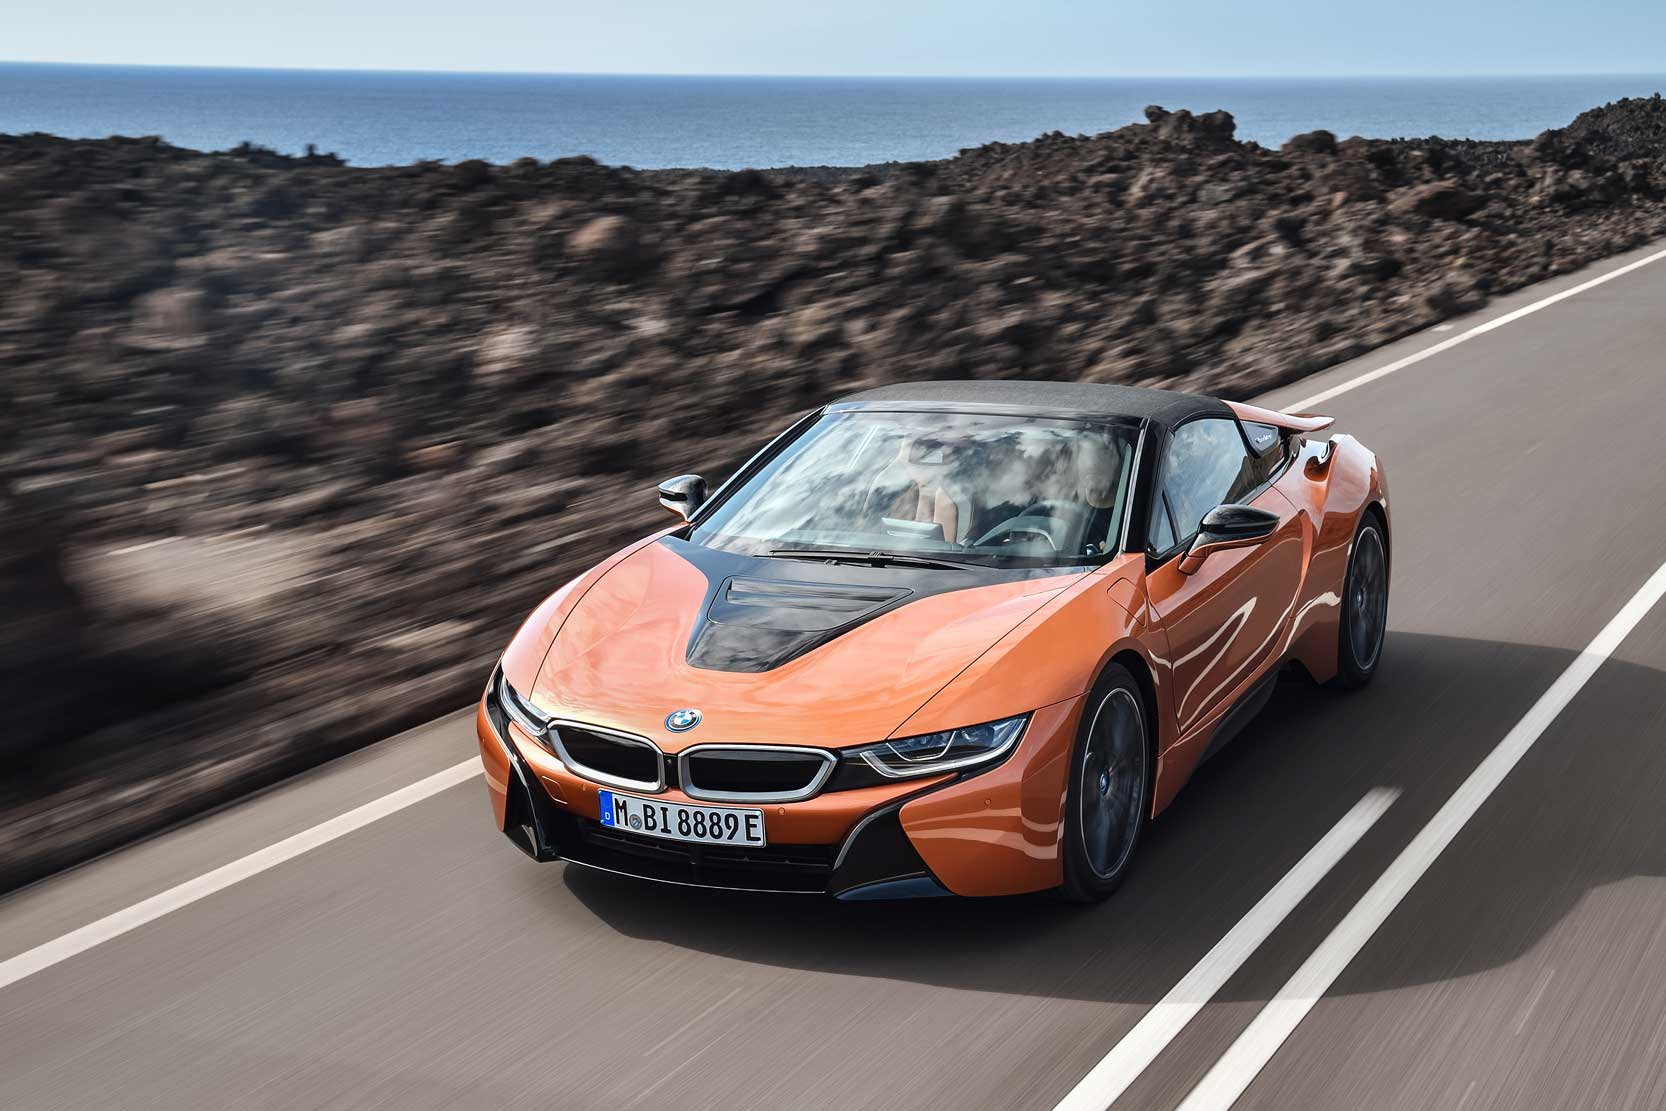 Exterieur_Bmw-i8-Roadster_2